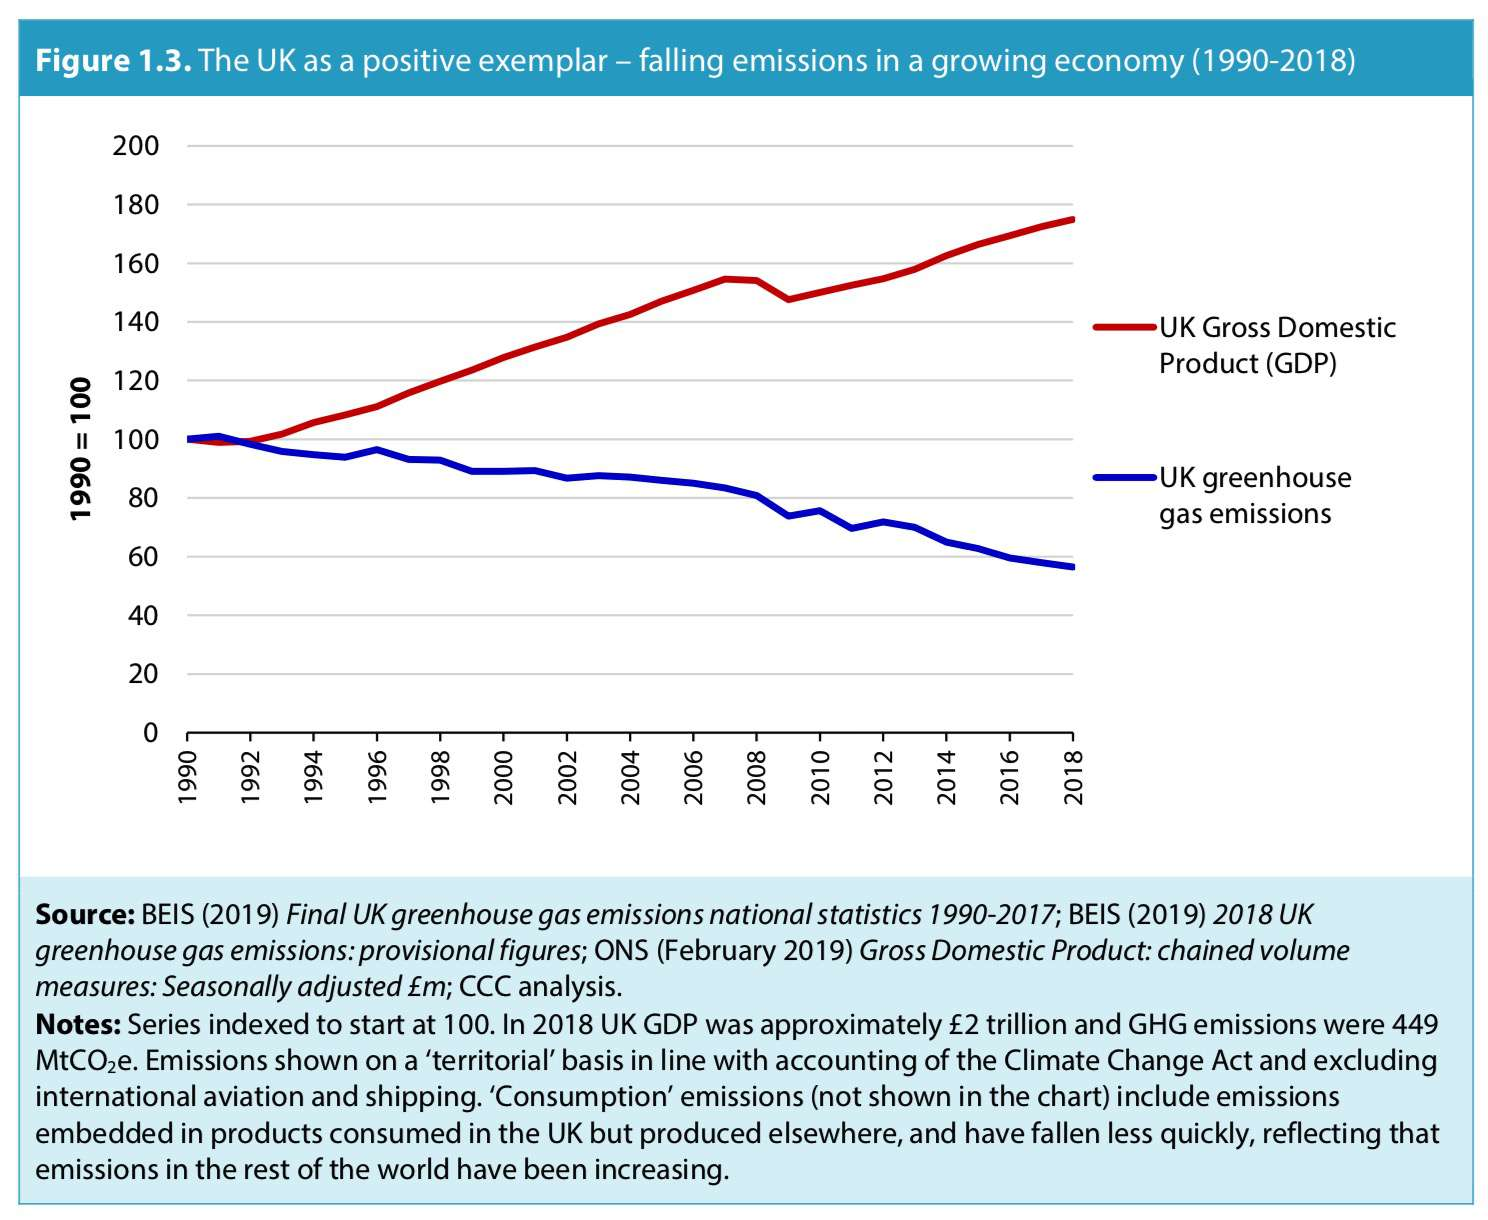 emissions decline in the UK